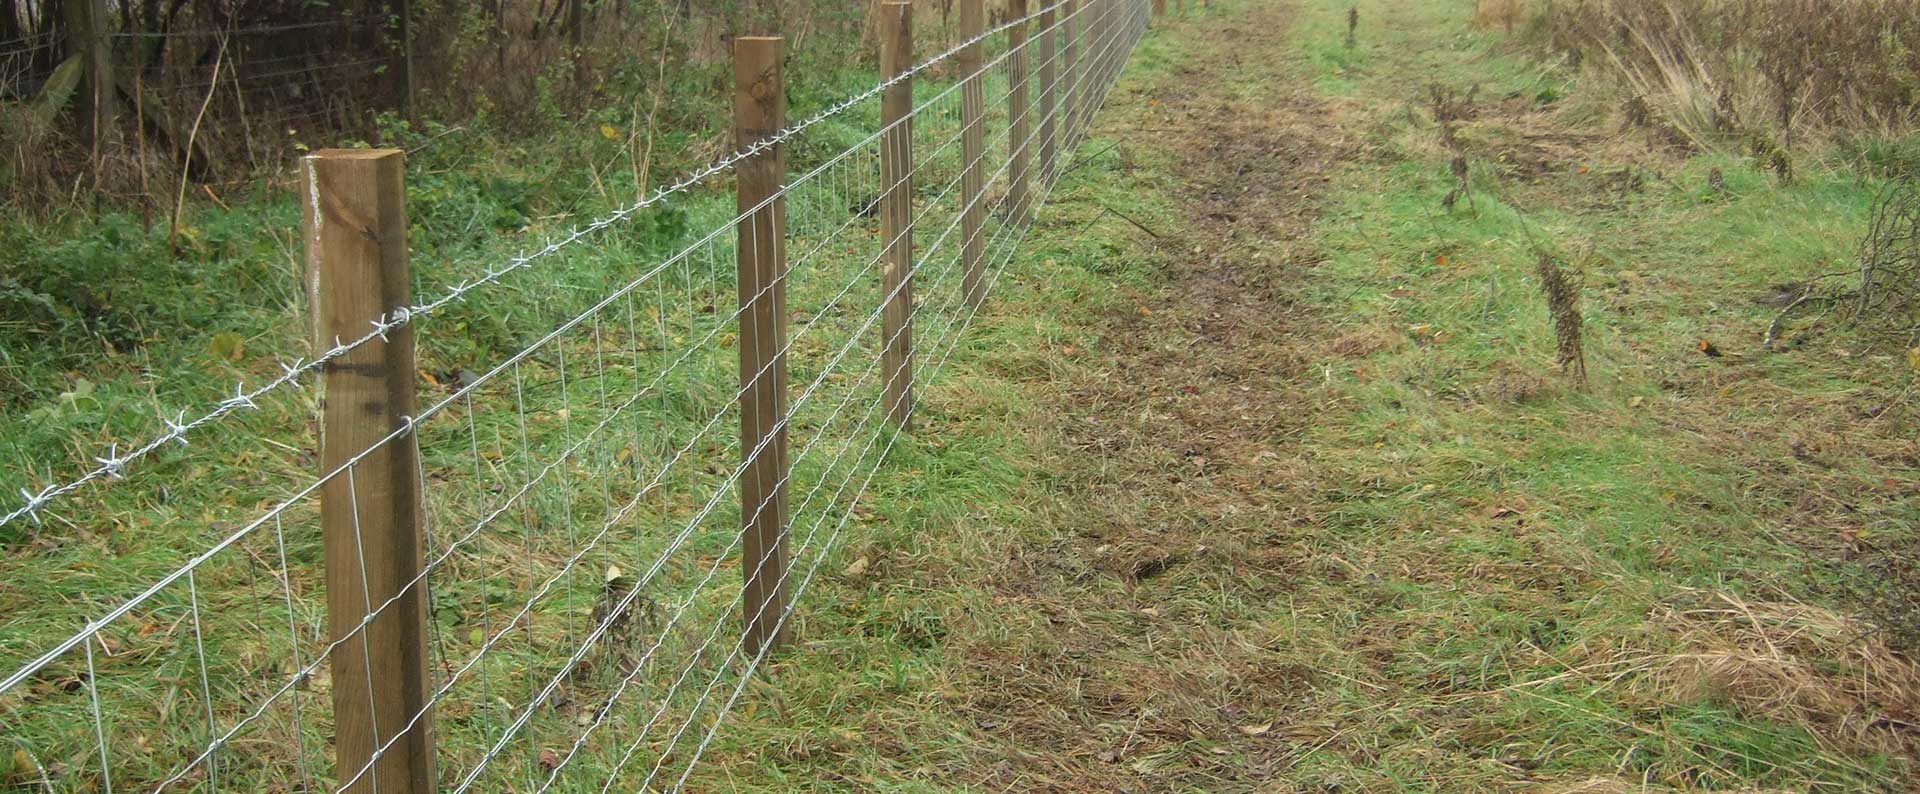 Strained Wire Fencing